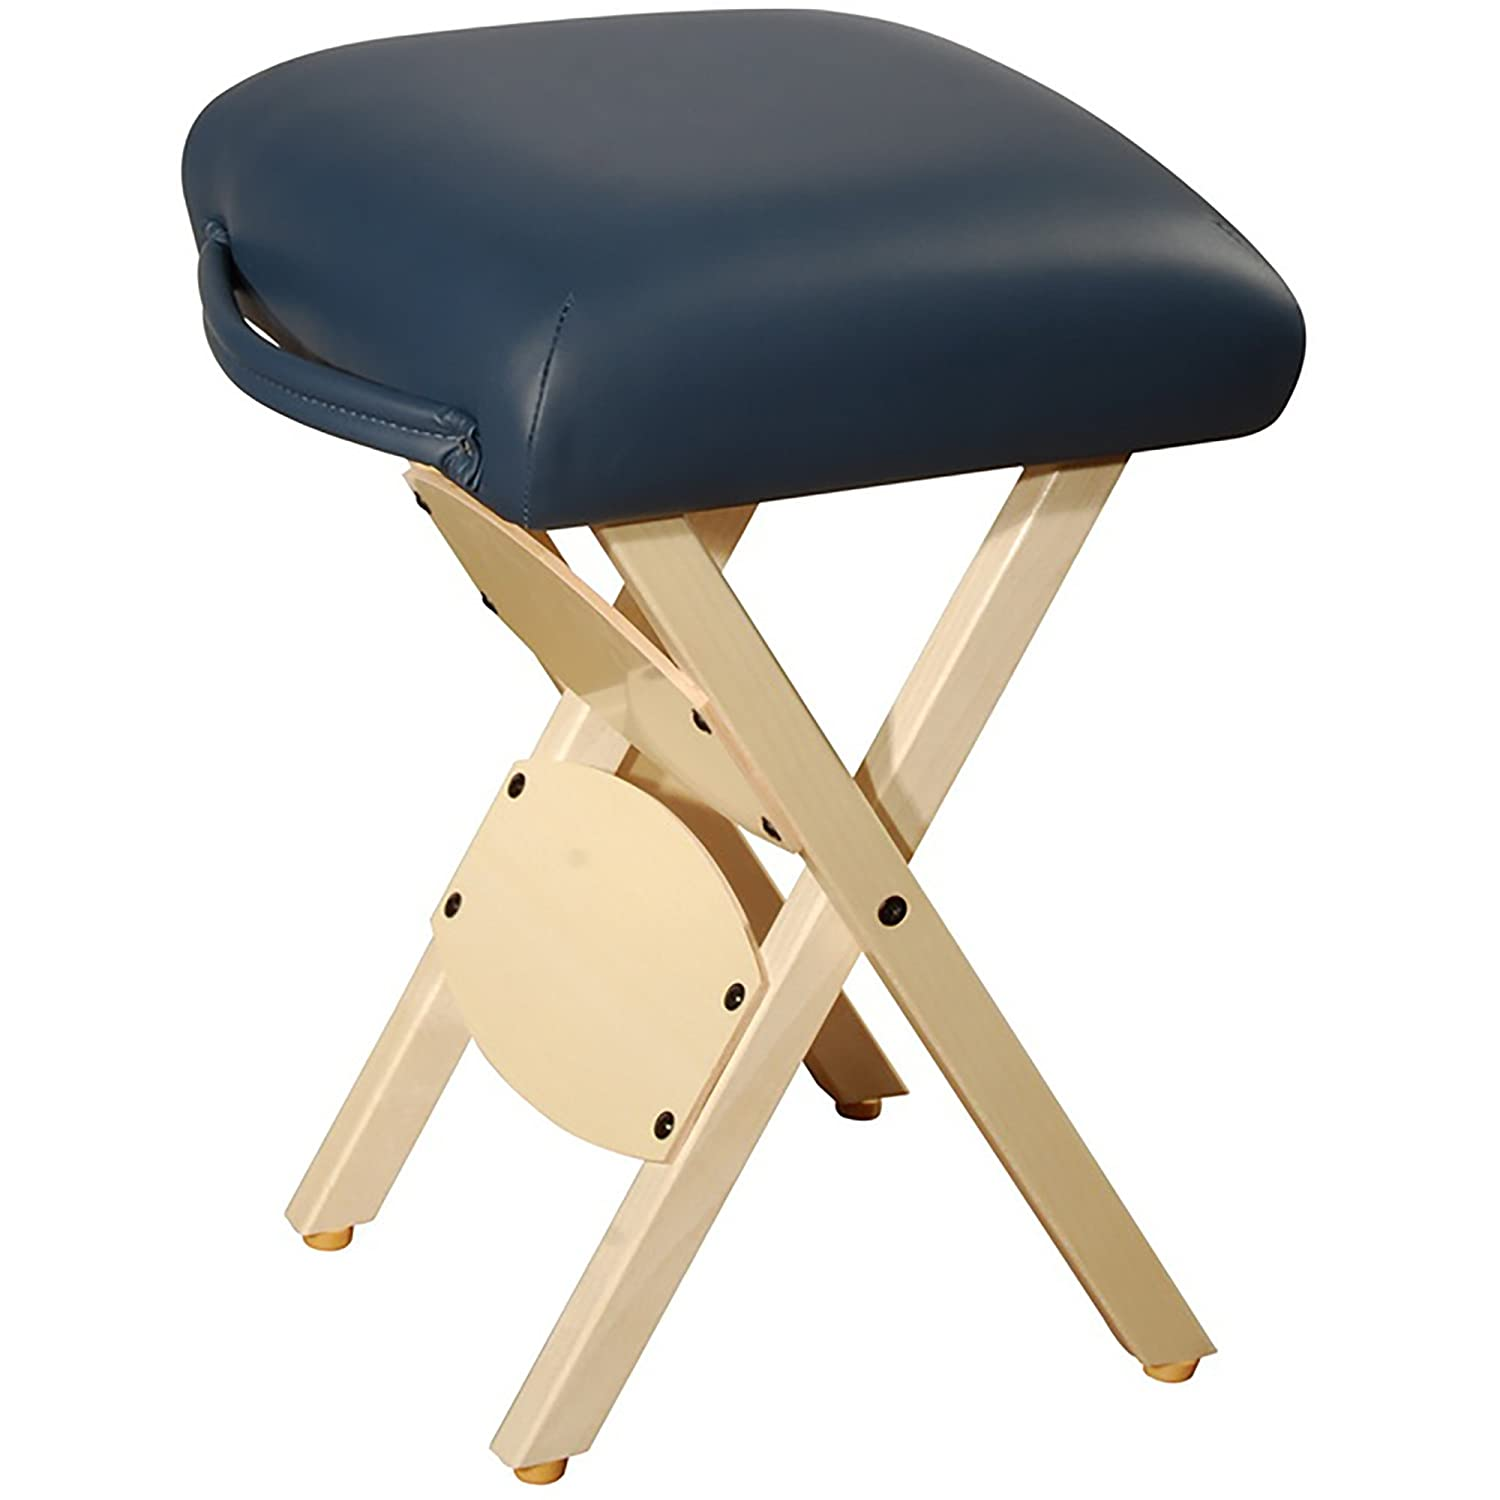 Mt Massage Tables Wooden Folding Massage Stool, Beige Master Home Products LTD. (DROPSHIP) AX-AY-ABHI-77409